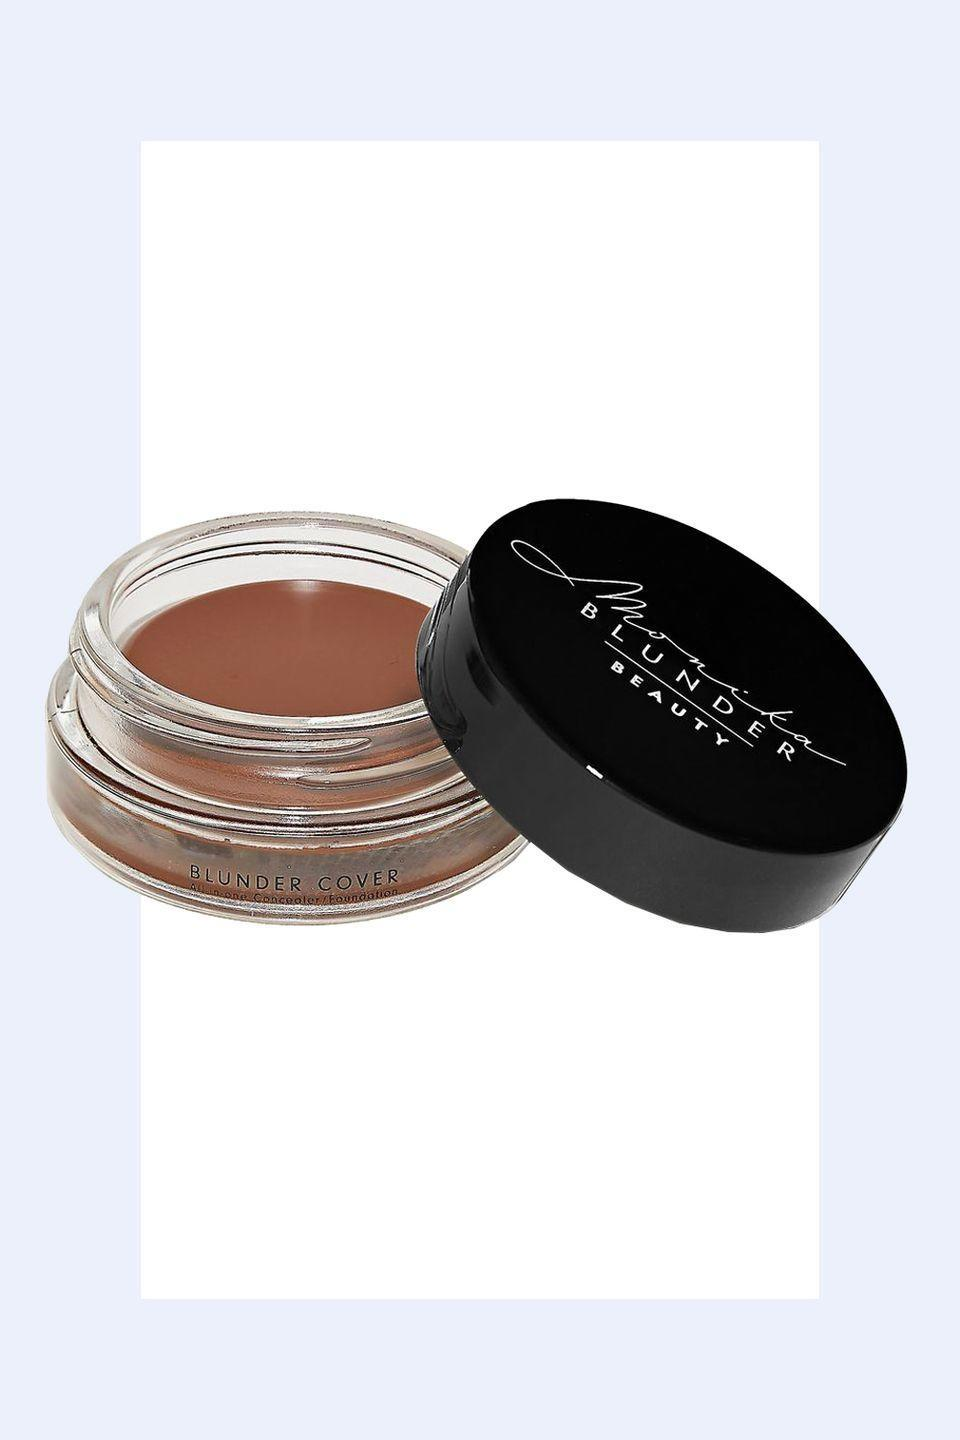 """<p><a class=""""link rapid-noclick-resp"""" href=""""https://go.redirectingat.com?id=74968X1596630&url=https%3A%2F%2Fmonikablunderbeauty.com%2Fproducts%2Fshade-9-neun&sref=https%3A%2F%2Fwww.redbookmag.com%2Fbeauty%2Fg36983579%2Fhow-to-look-younge1%2F"""" rel=""""nofollow noopener"""" target=""""_blank"""" data-ylk=""""slk:SHOP NOW"""">SHOP NOW </a><em> Monika Blunder Beauty Blunder Cover, $52</em></p><p><em>""""</em>The trick with foundation is to <strong>not use more than you need</strong> to. If you have large areas of skin which is clear, such as your cheeks and forehead, you should leave it with just a little coverage or just skincare. Then, spot correct in the areas where you have discoloration or redness.""""—<em>Monika Blunder, celebrity makeup artist and founder of Monika Blunder Beauty</em><em><br></em></p>"""